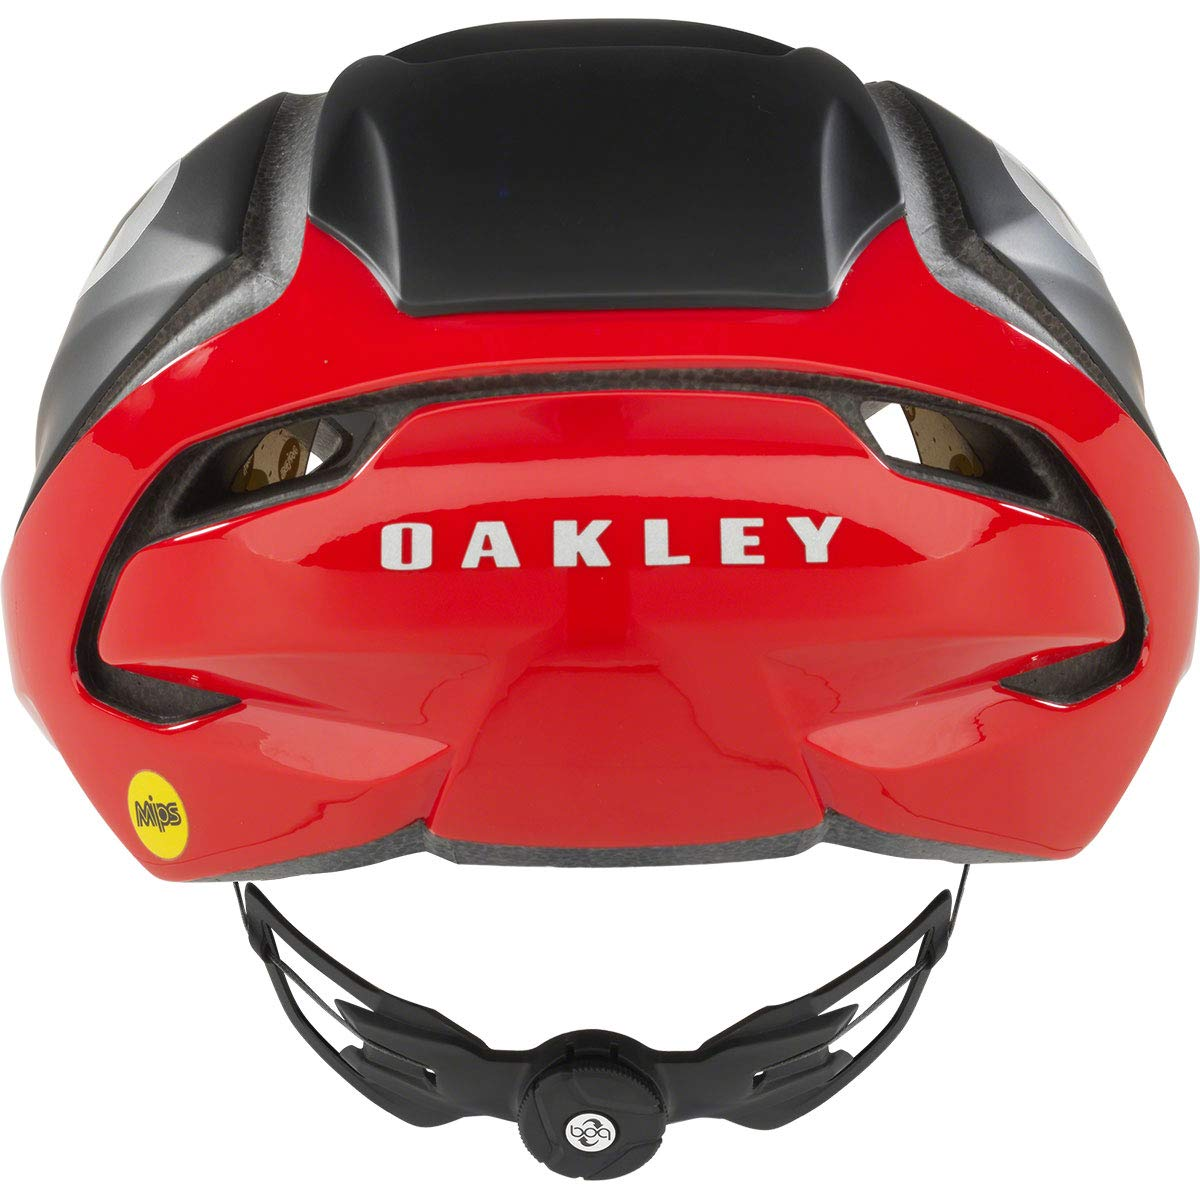 Oakley ARO5 Men s MTB Cycling Helmet